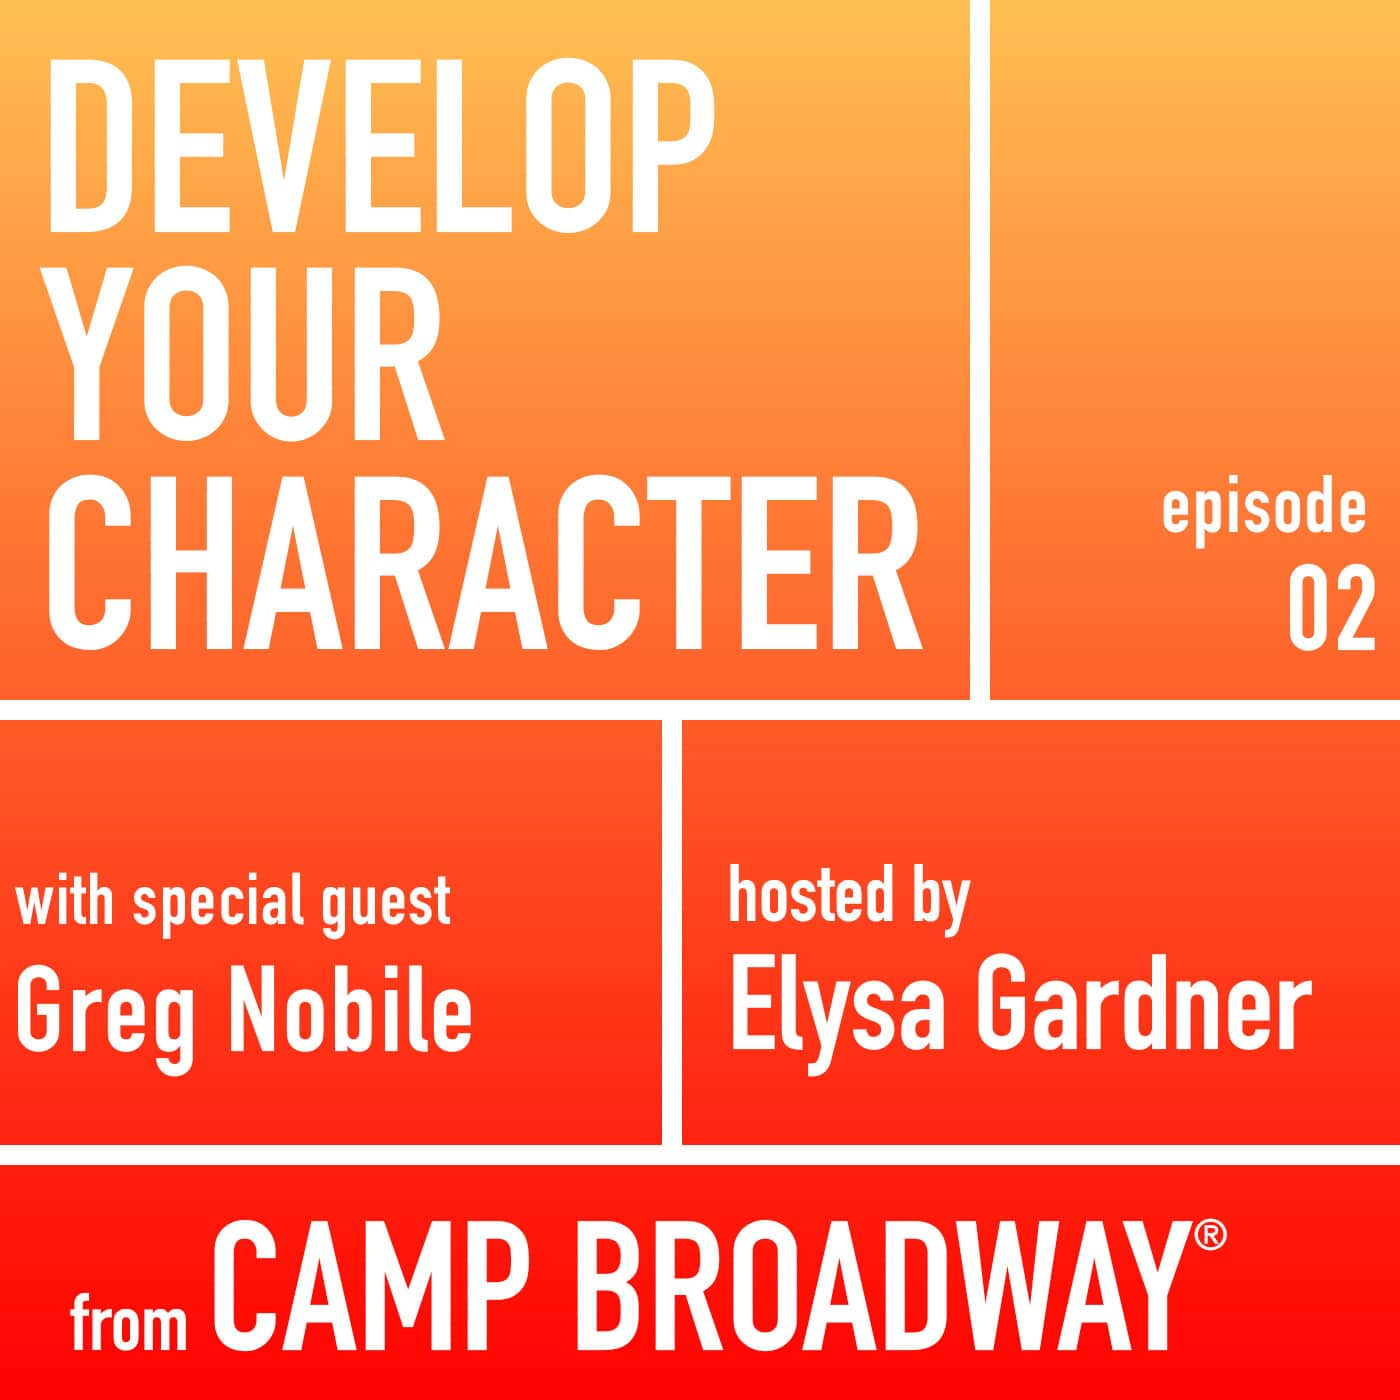 Develop Your Character Episode 2 - Greg Nobile, Producer